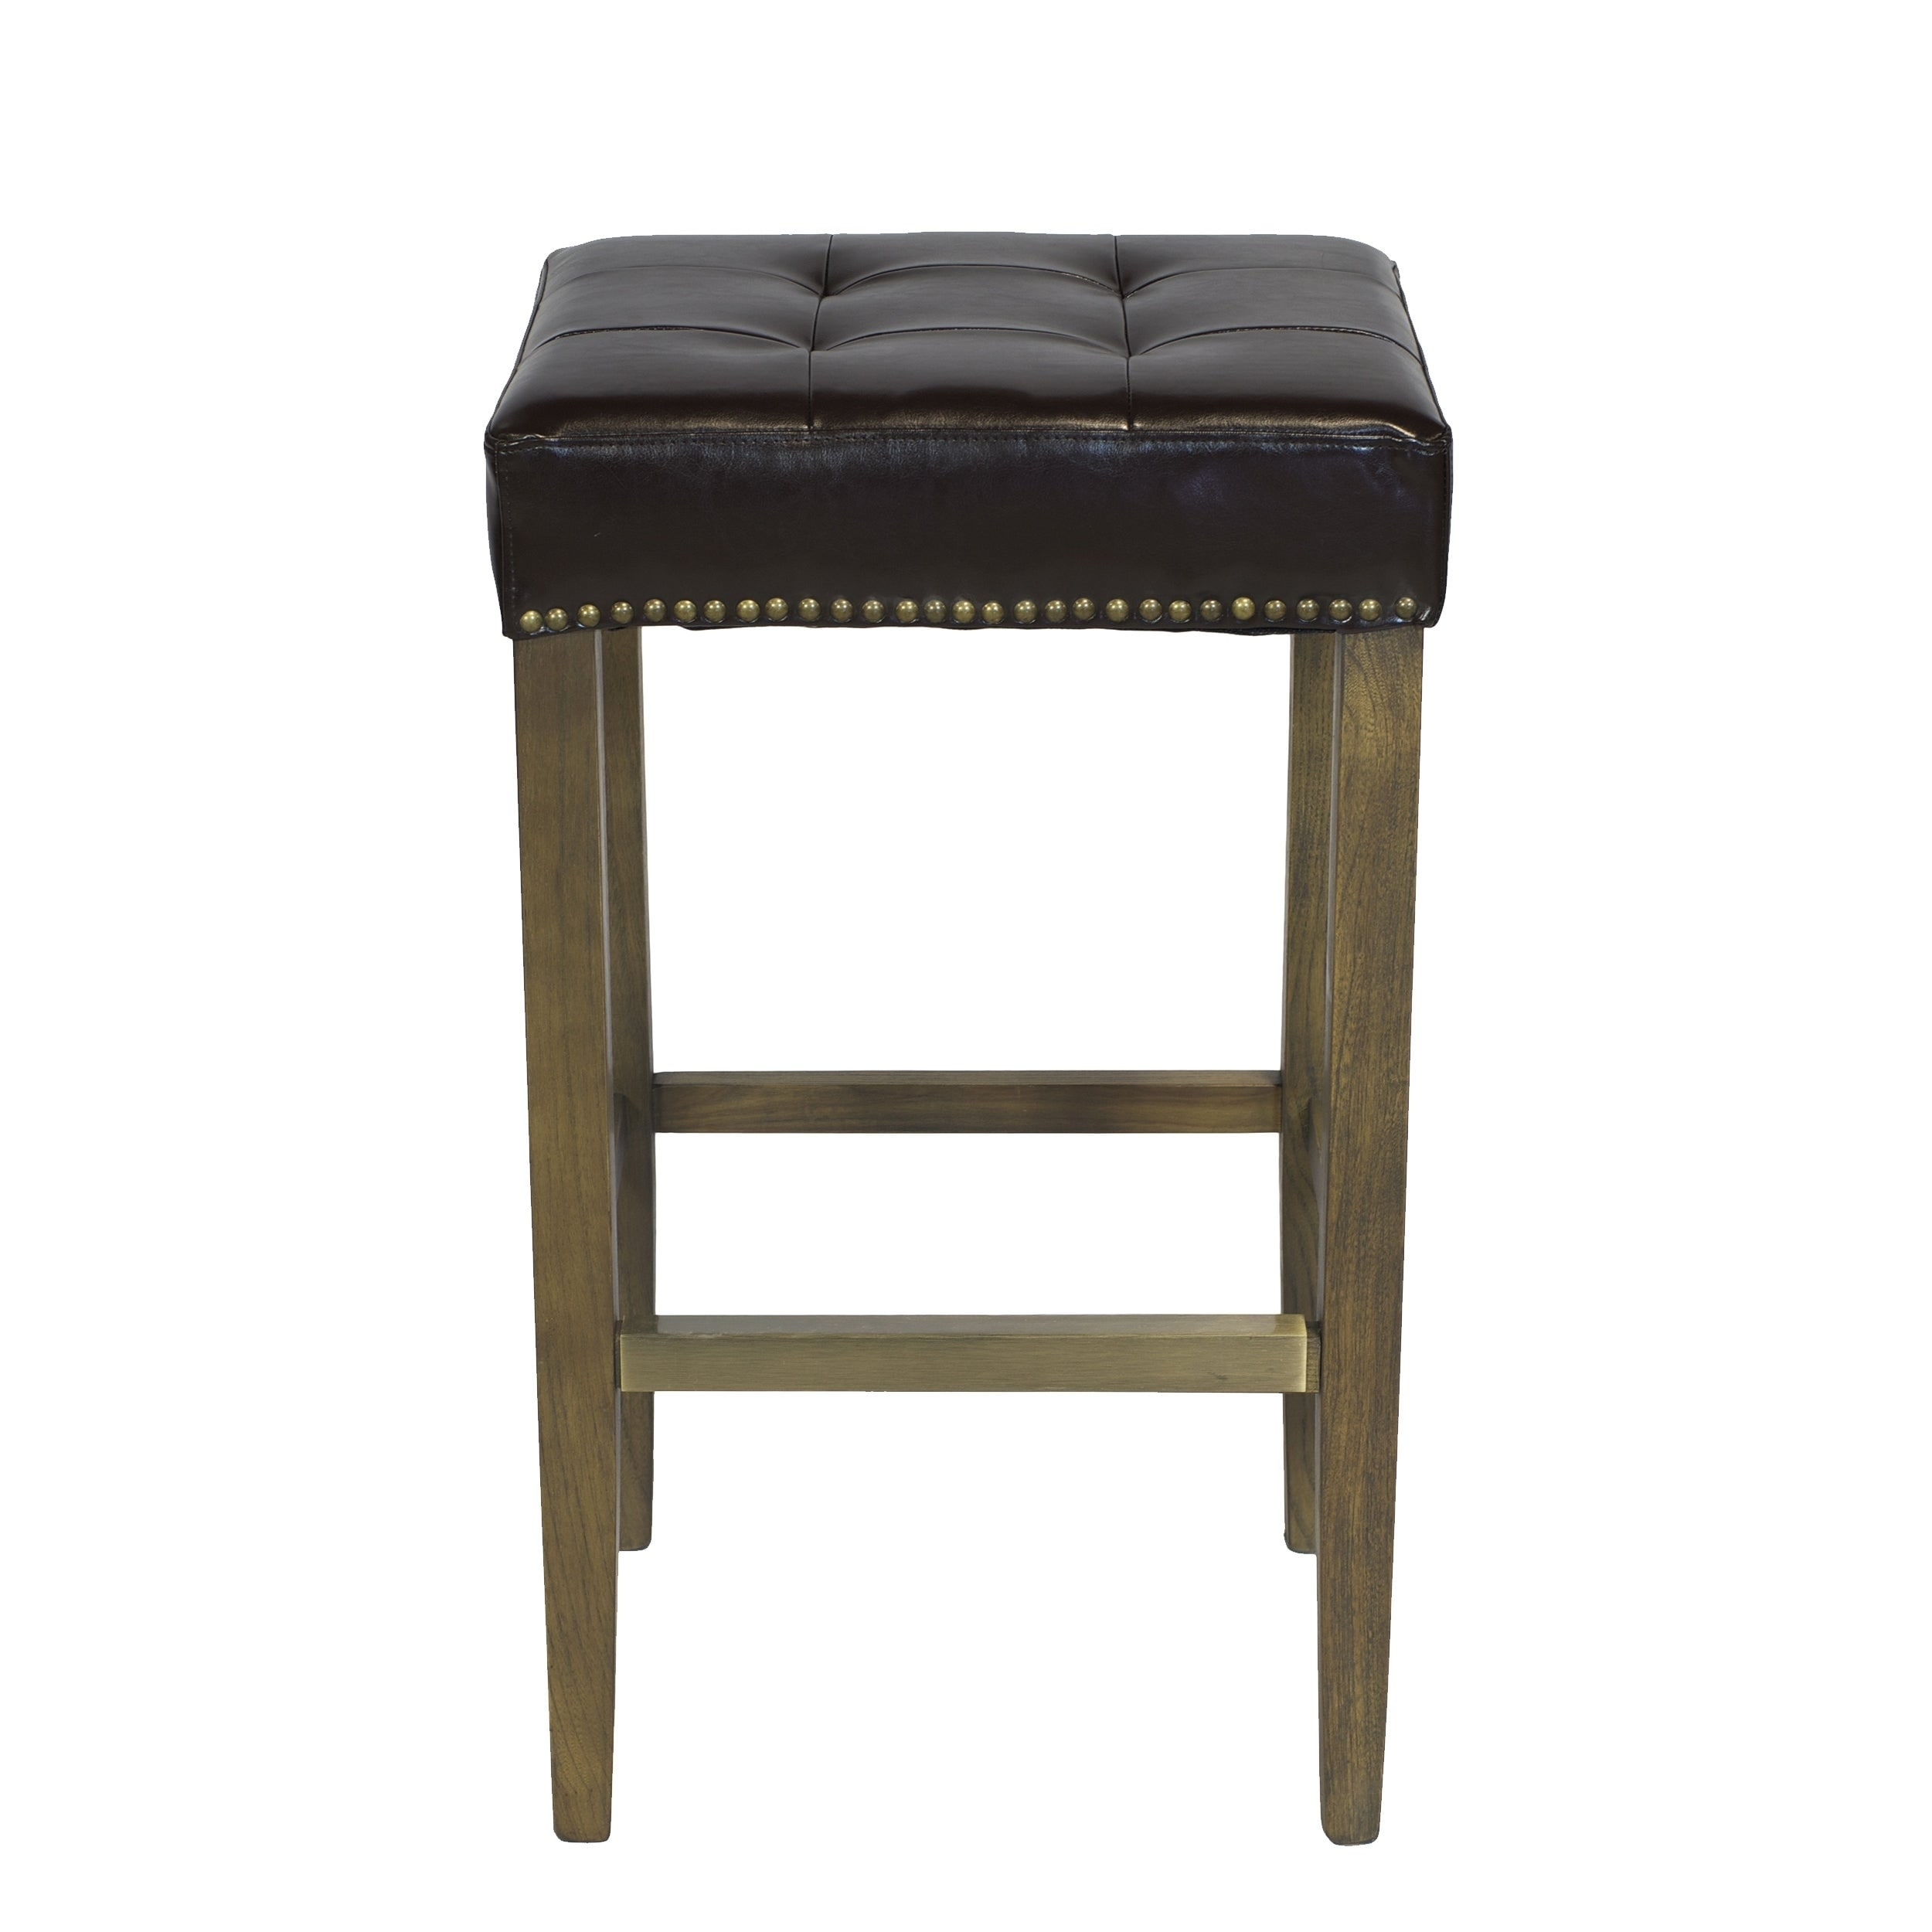 Awesome Handmade Ash Bar Stool With Brown Leather Seat And Brass Nailheads Gamerscity Chair Design For Home Gamerscityorg